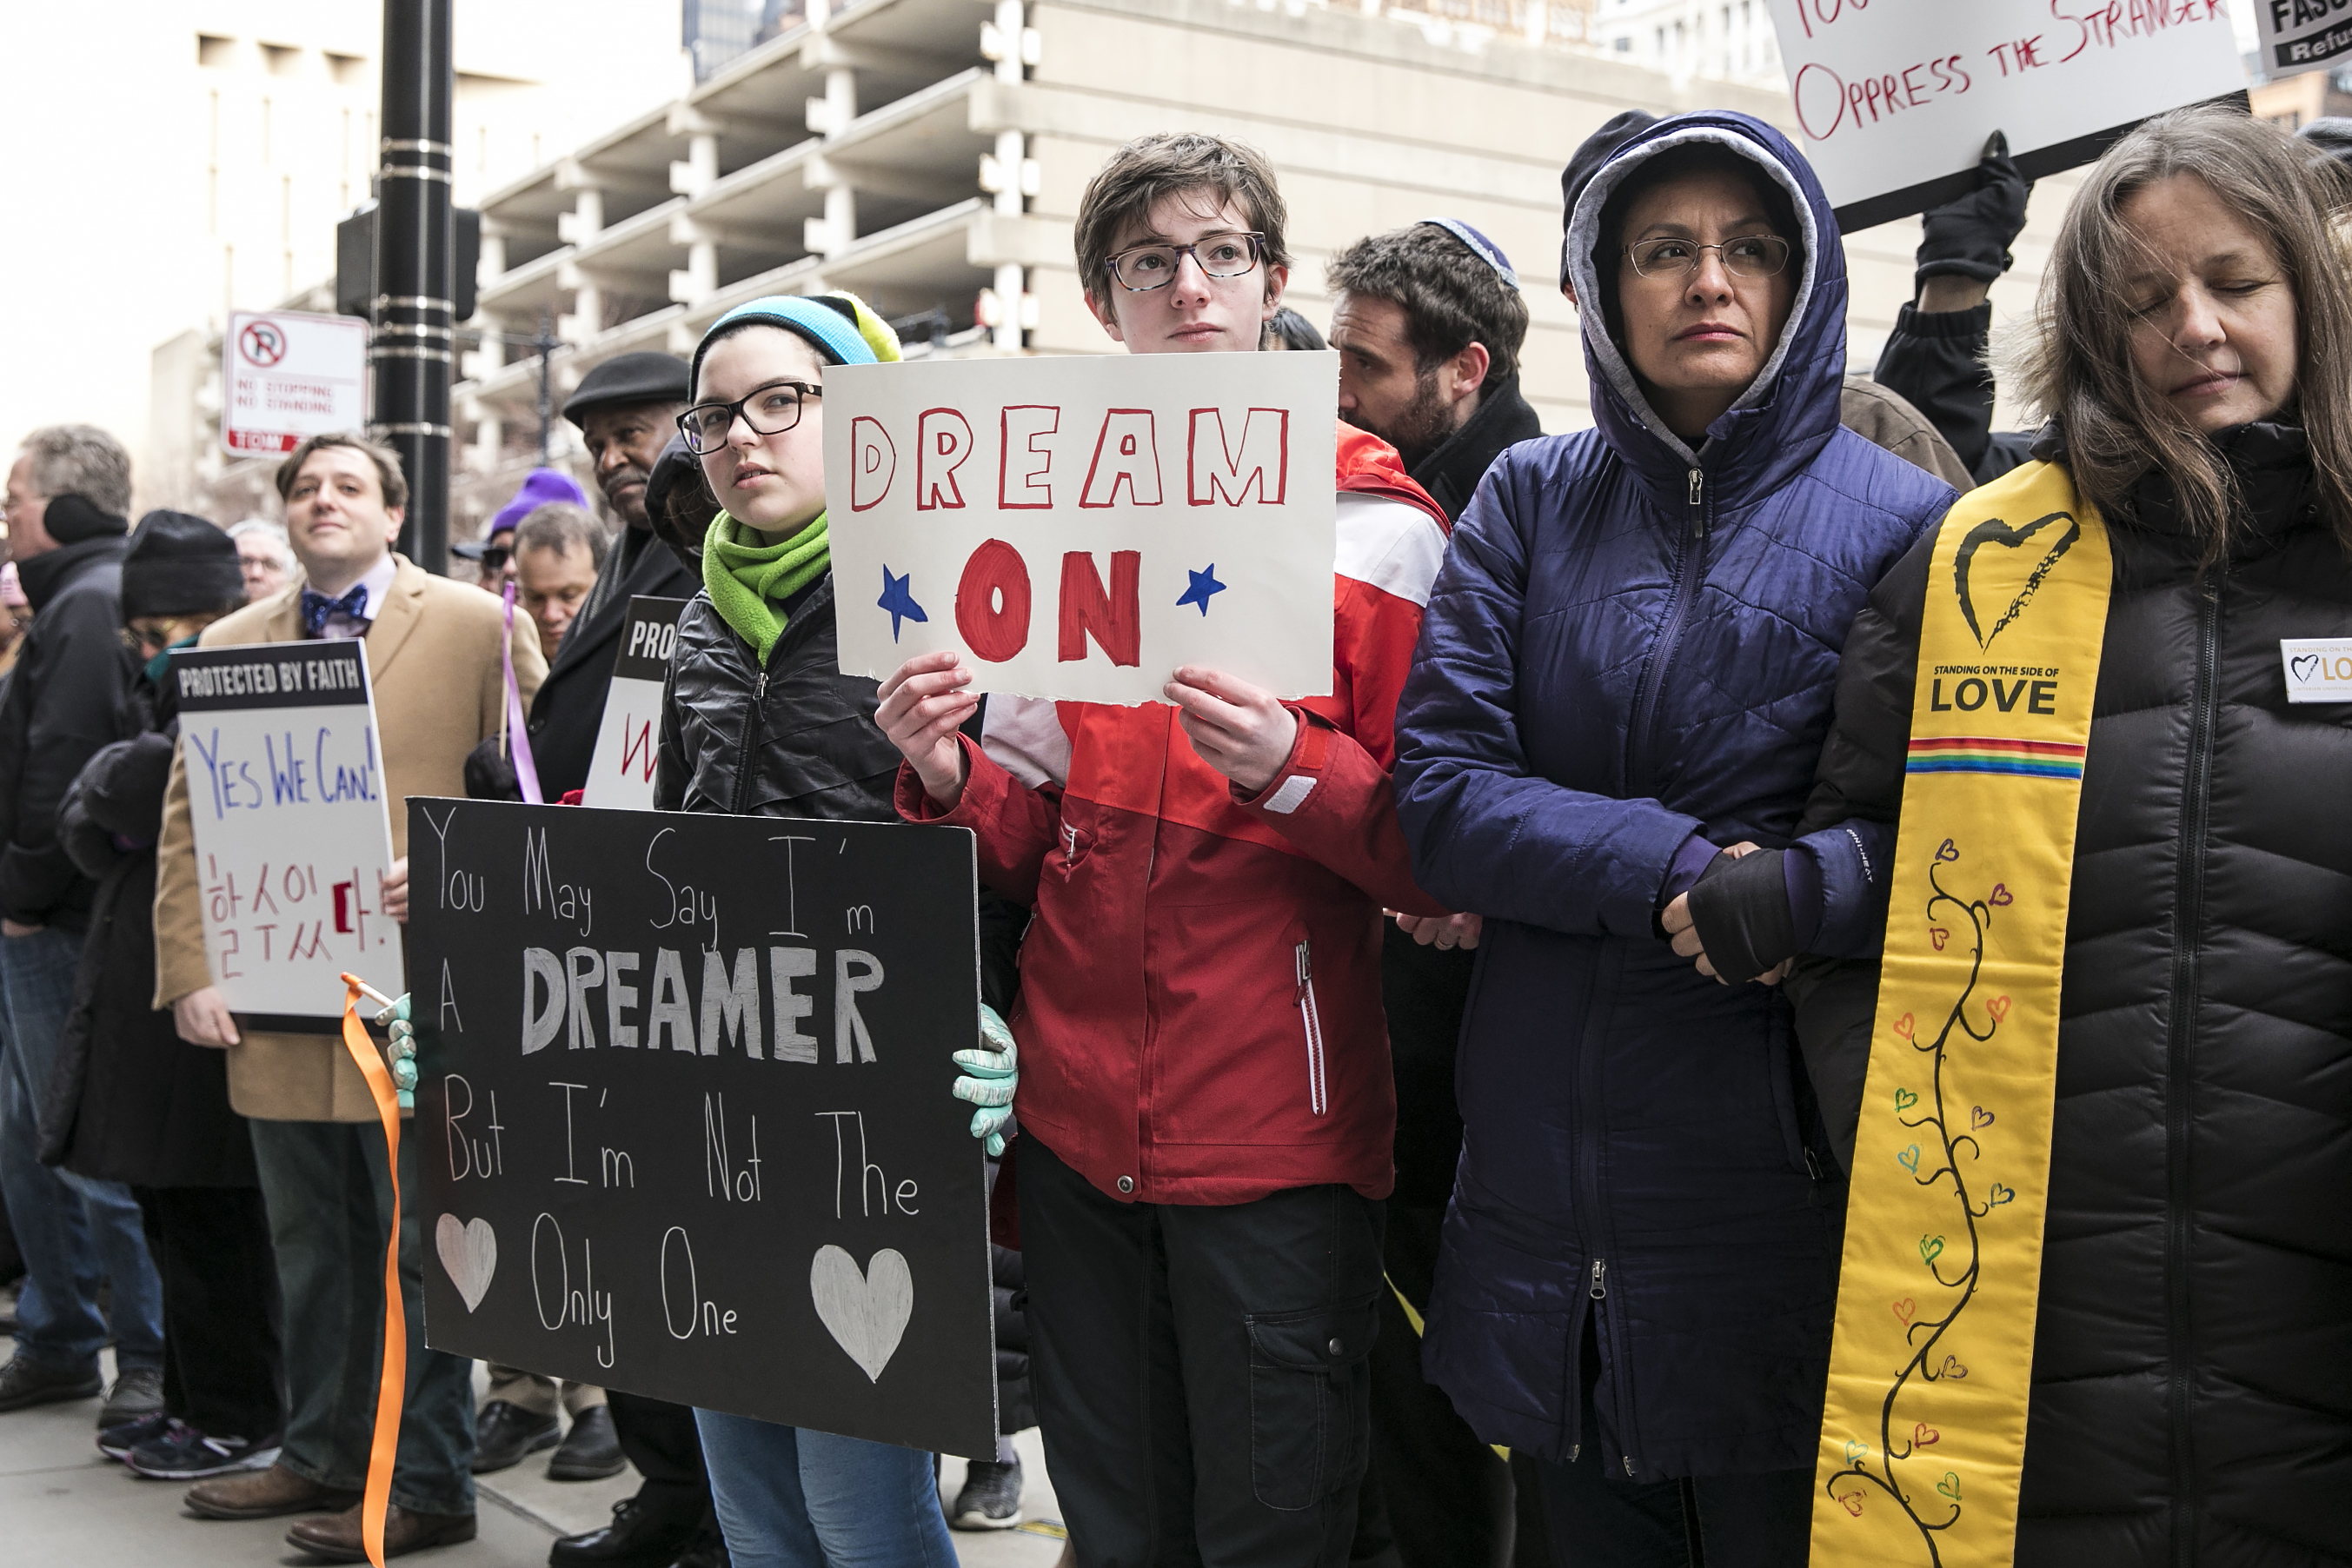 Activists and faith leaders link arms outside the Chicago headquarters of U.S. Immigration and Customs Enforcement to call for immigration reform in 2018.